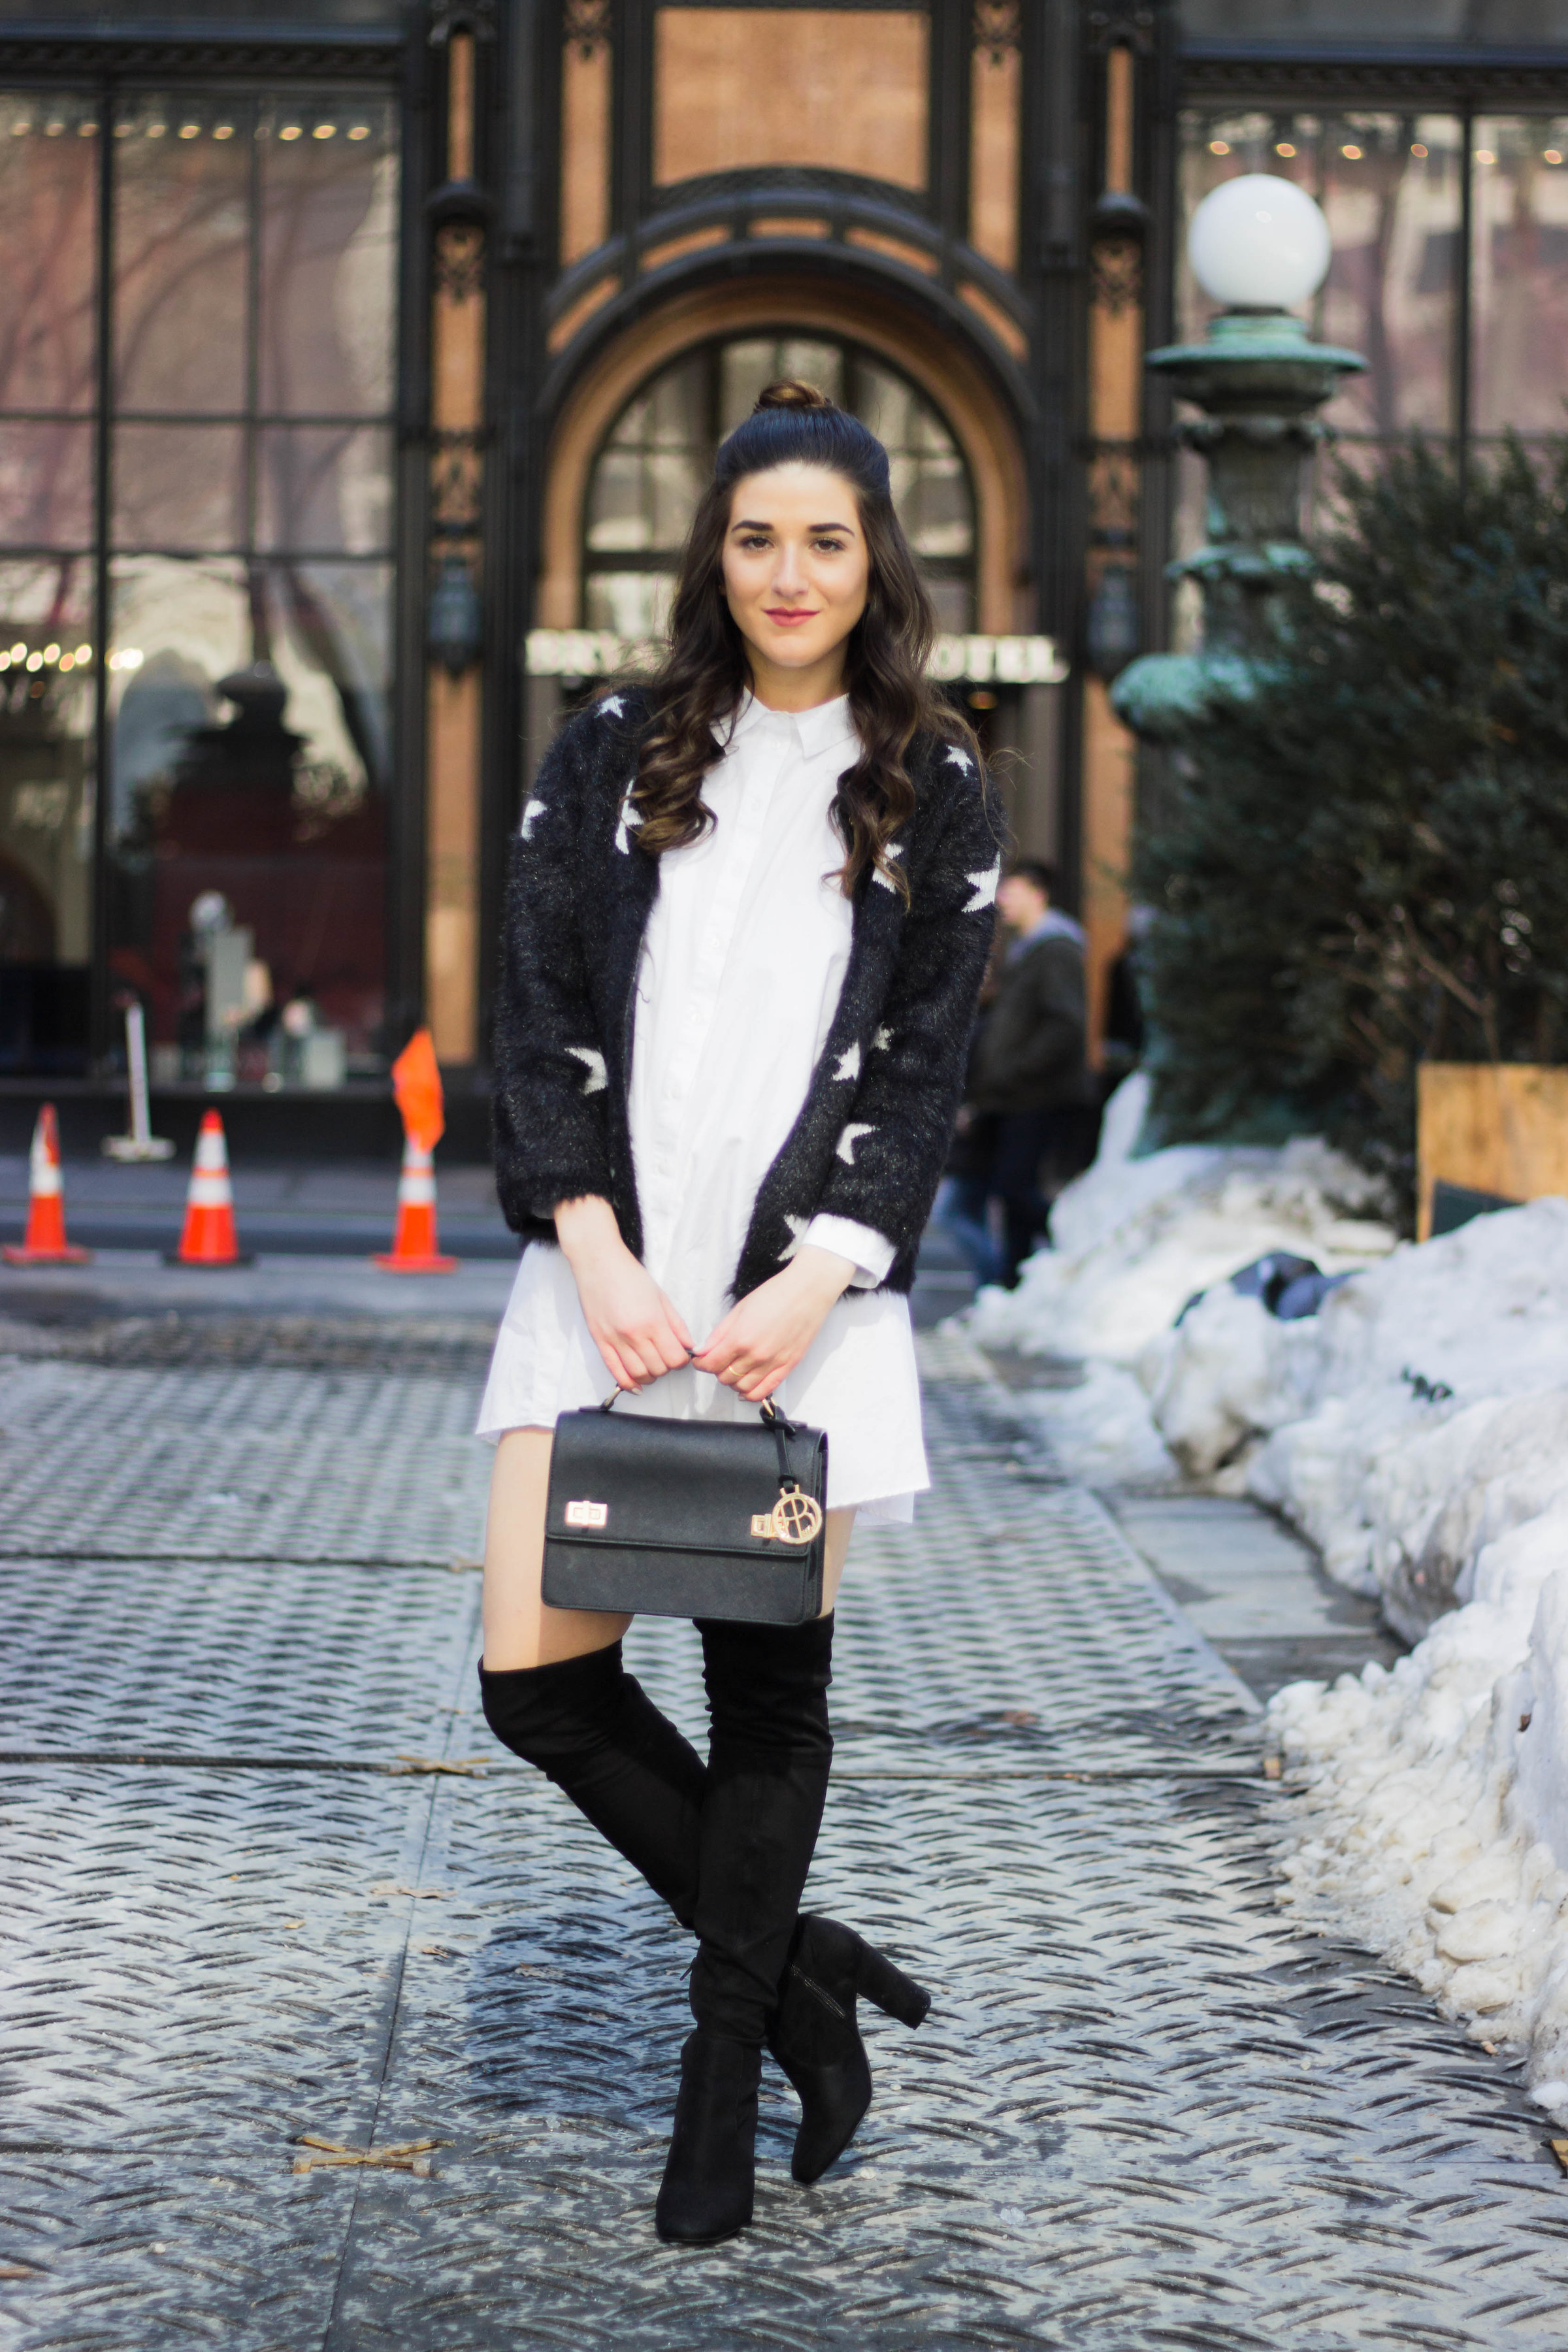 Trescool Star Jacket How NYC Changed My Style Esther Santer Fashion Blog NYC Street Style Blogger Outfit OOTD Trendy Henri Bendel Black Bag Over The Knee Boots Bun Topknot Purse Girl Women Shoes Zara White Button Down Shirt Dress Wearing Shop Shopping.jpg